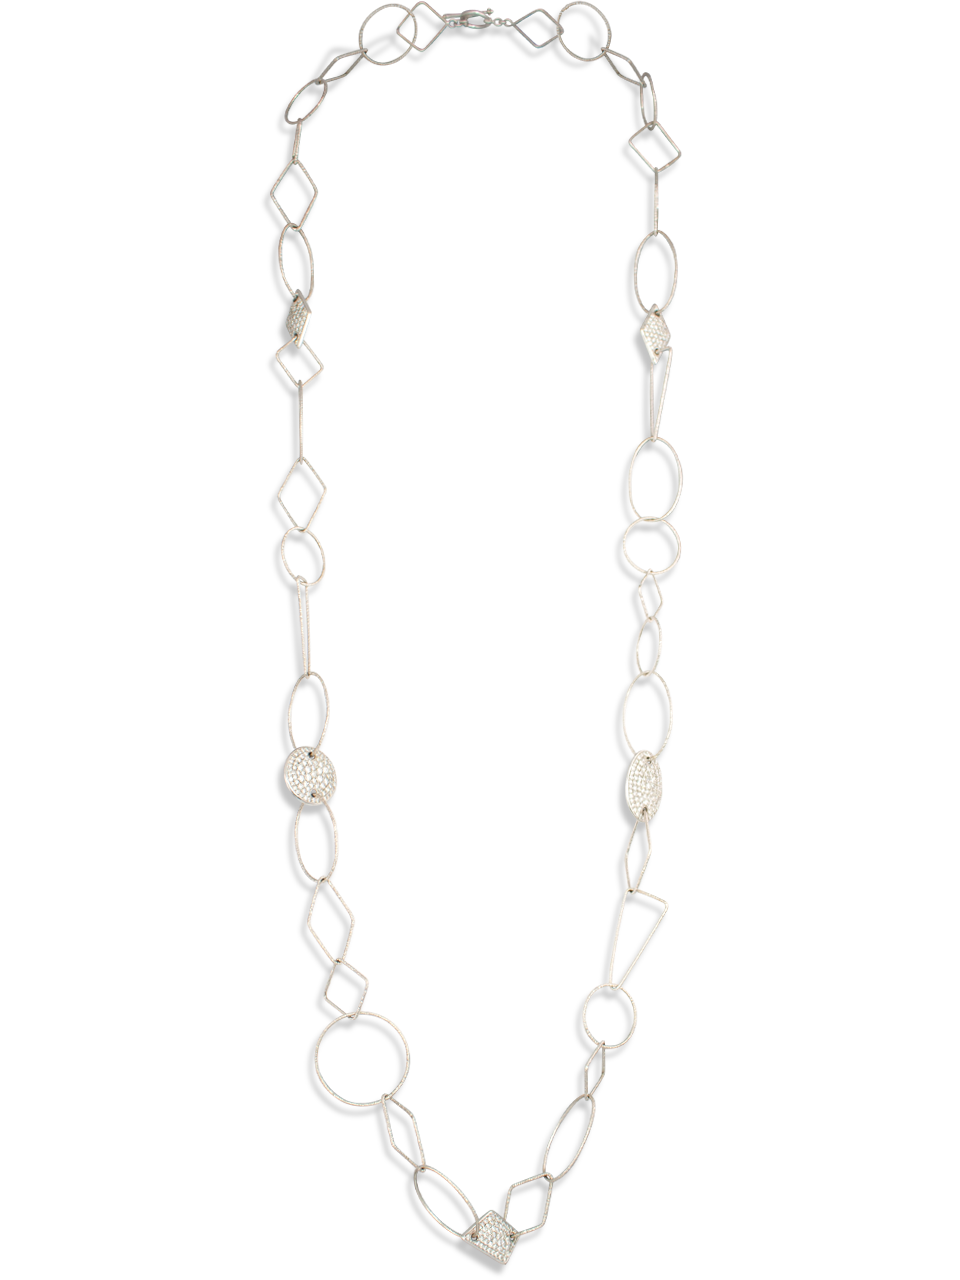 18k White Gold Link Necklace with Diamonds-1